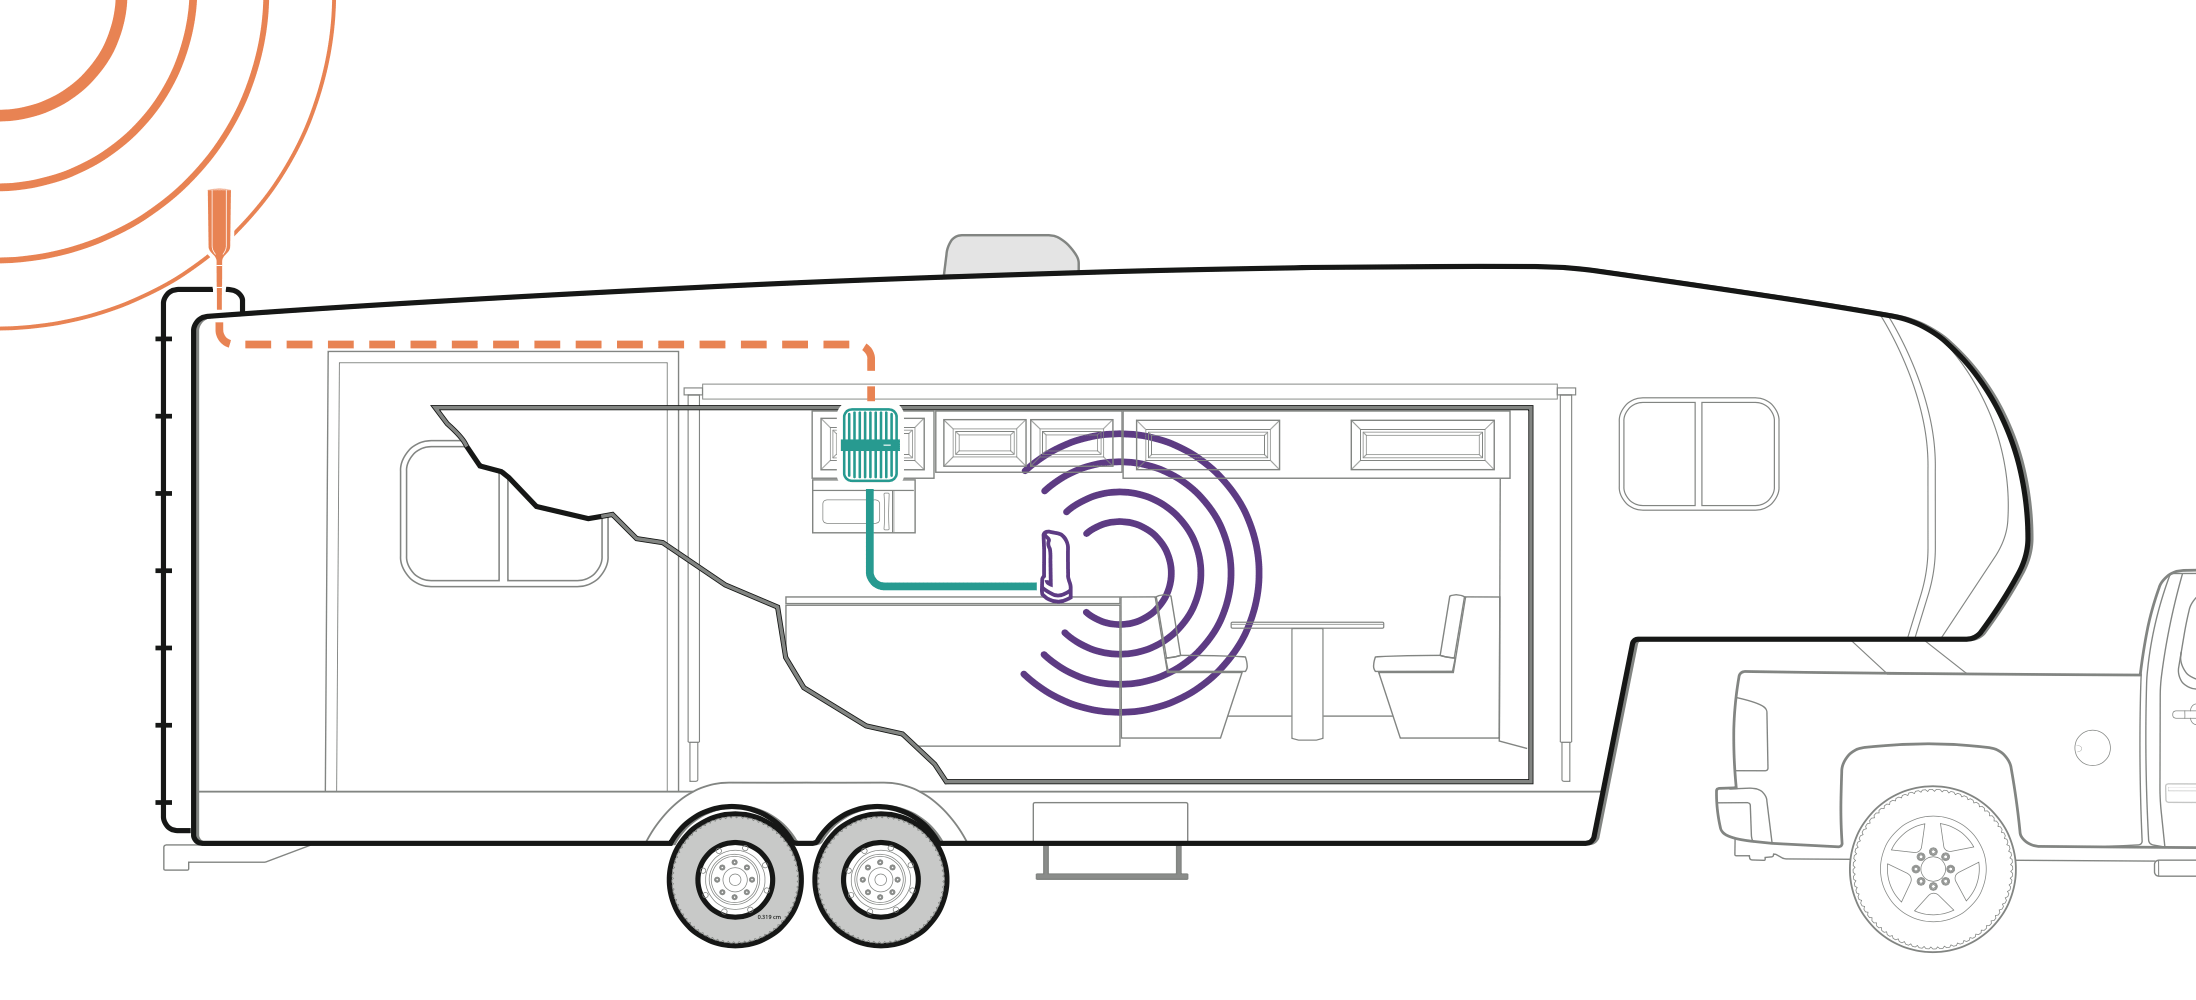 How weBoost Drive Reach RV with Desktop Antenna Works